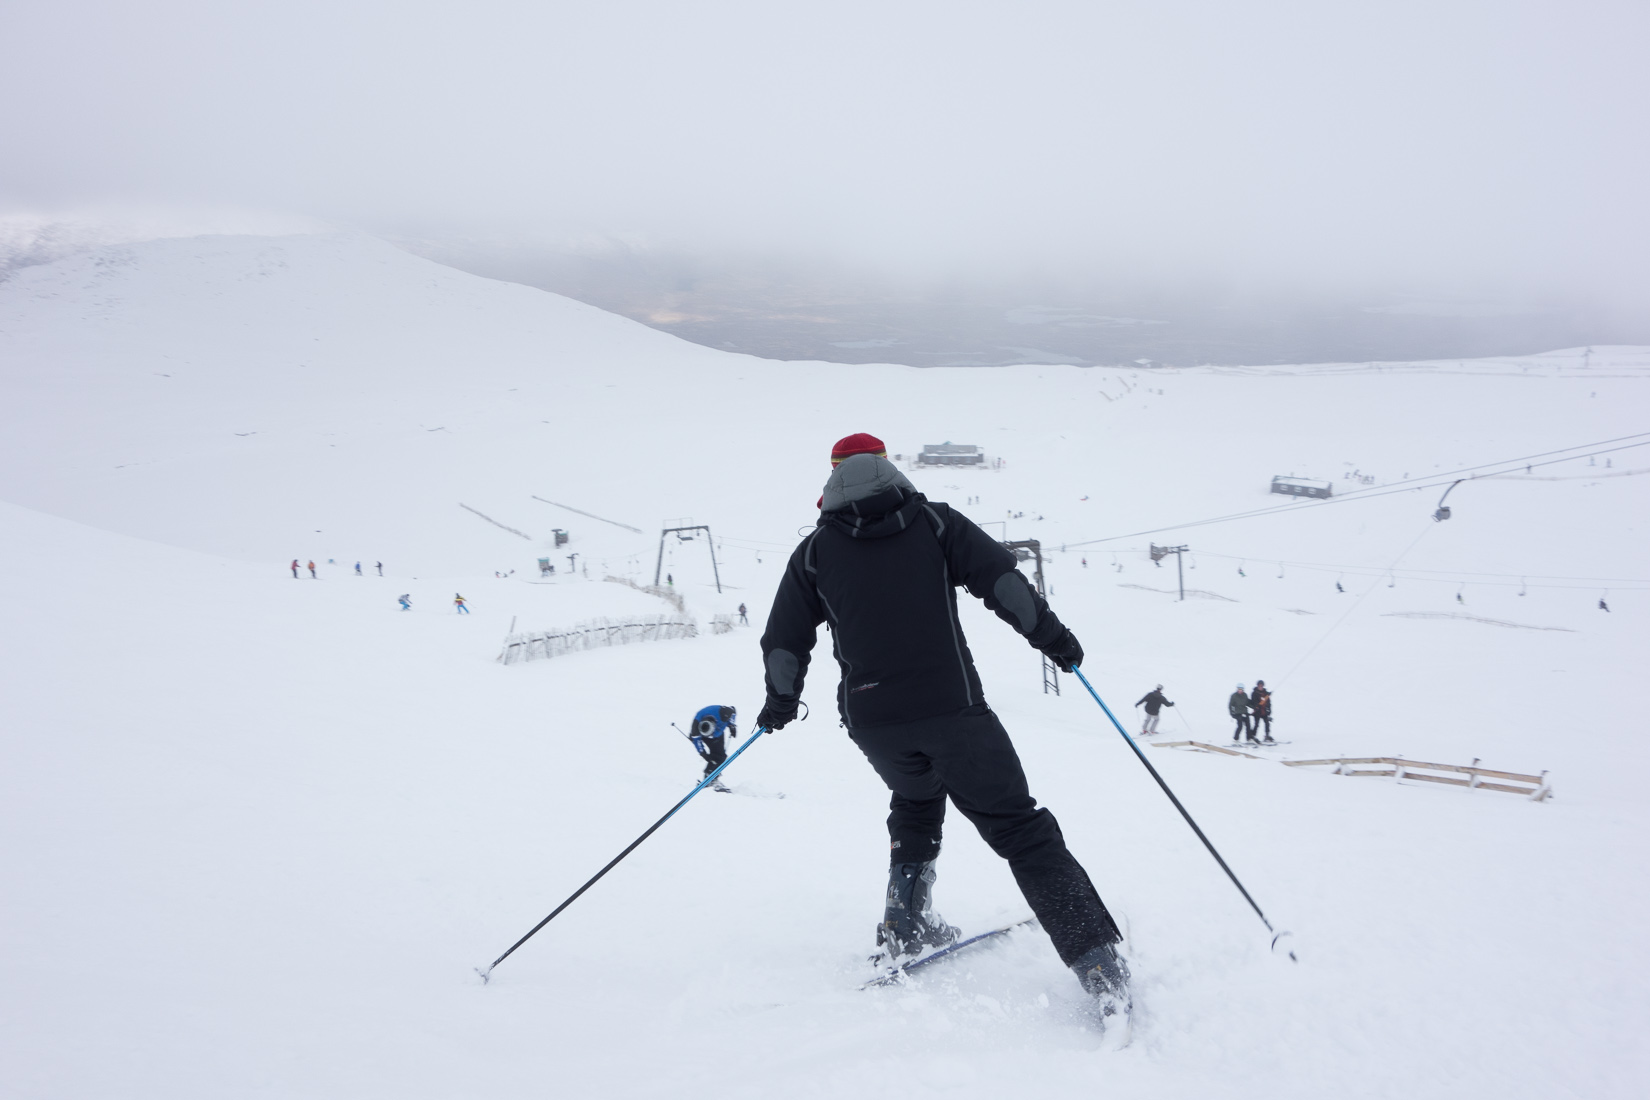 Skiing at Glencoe Mountain Resort